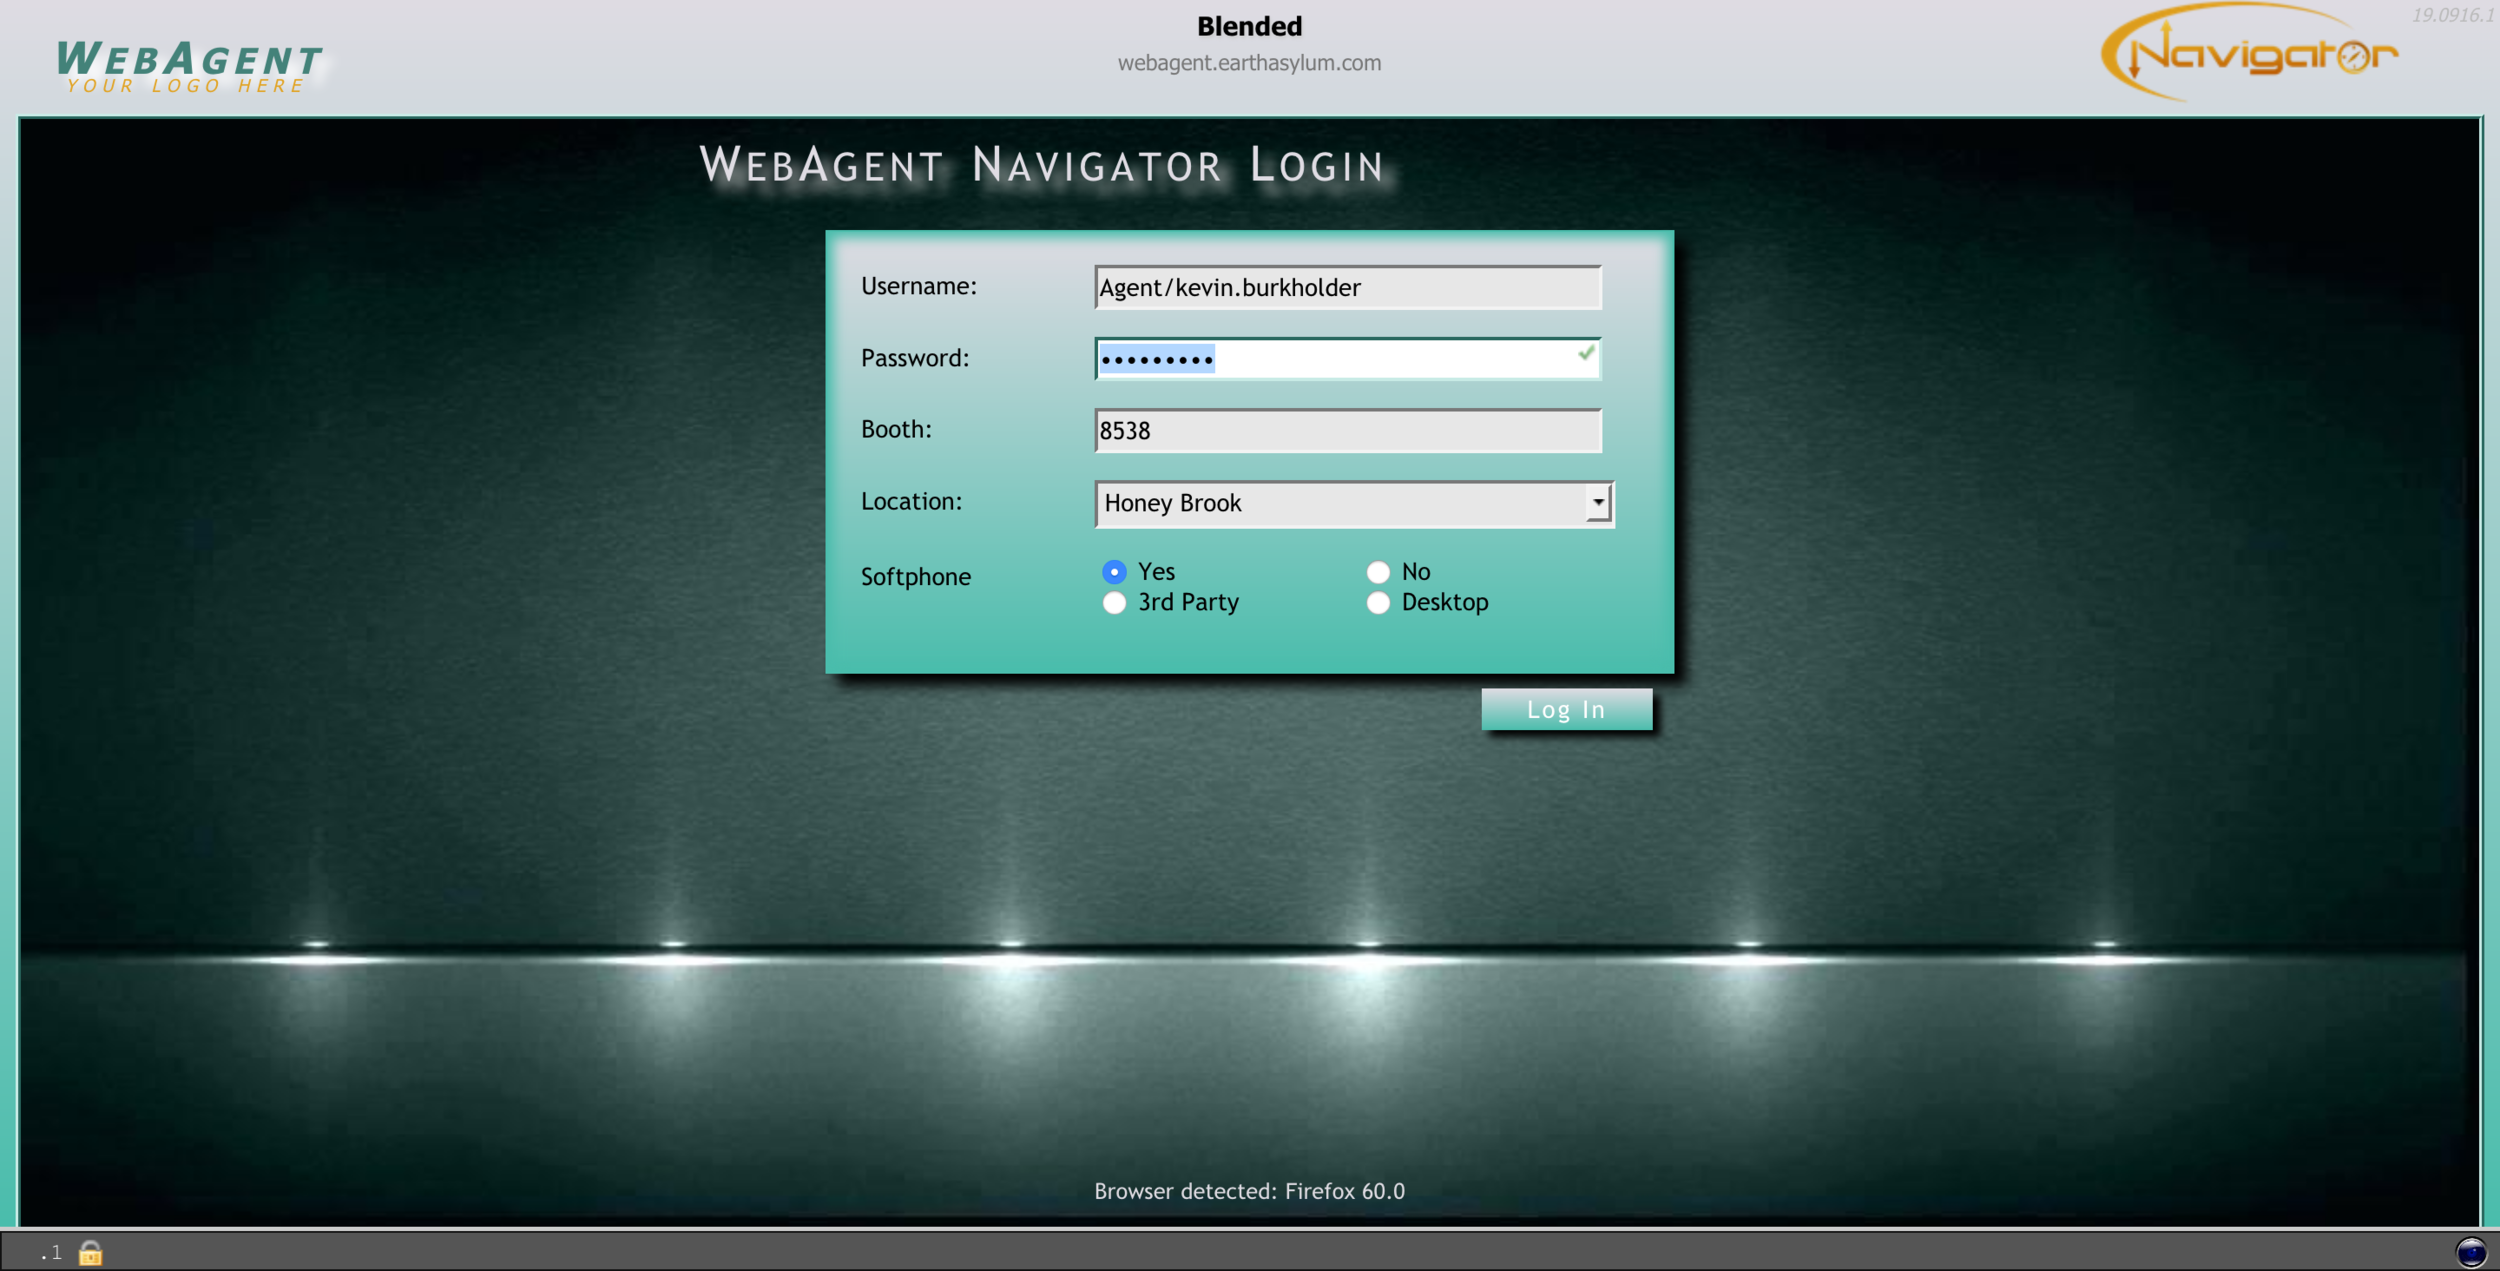 webagent login screen.png